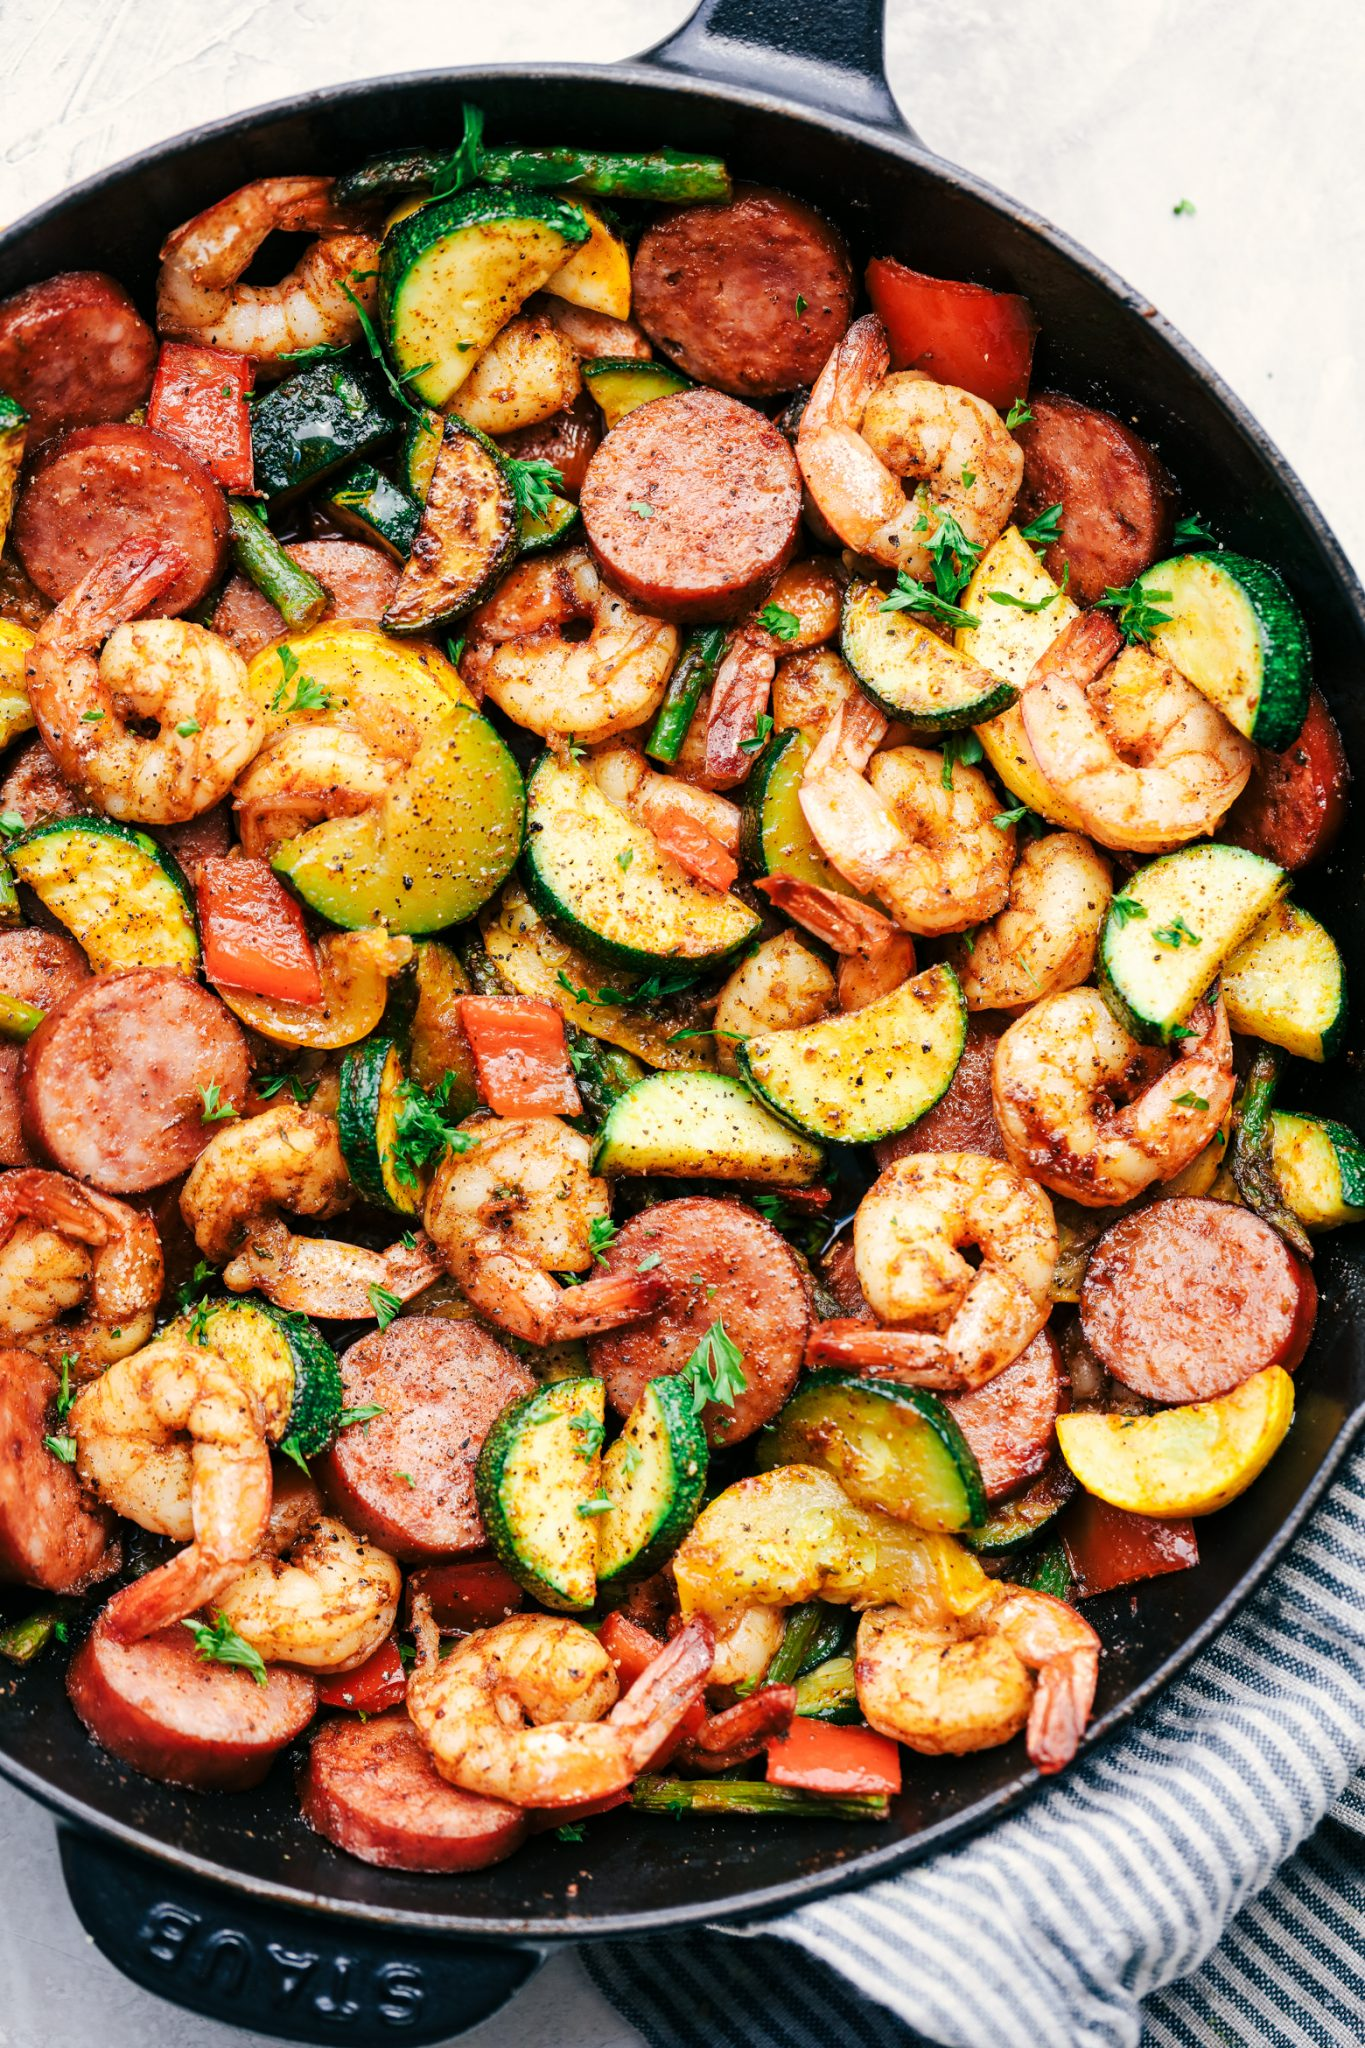 Back to School Healthy Lunches for Adults - Cajun Shrimp and Sausage Vegetable Skillet via The Recipe Critic   https://www.roseclearfield.com